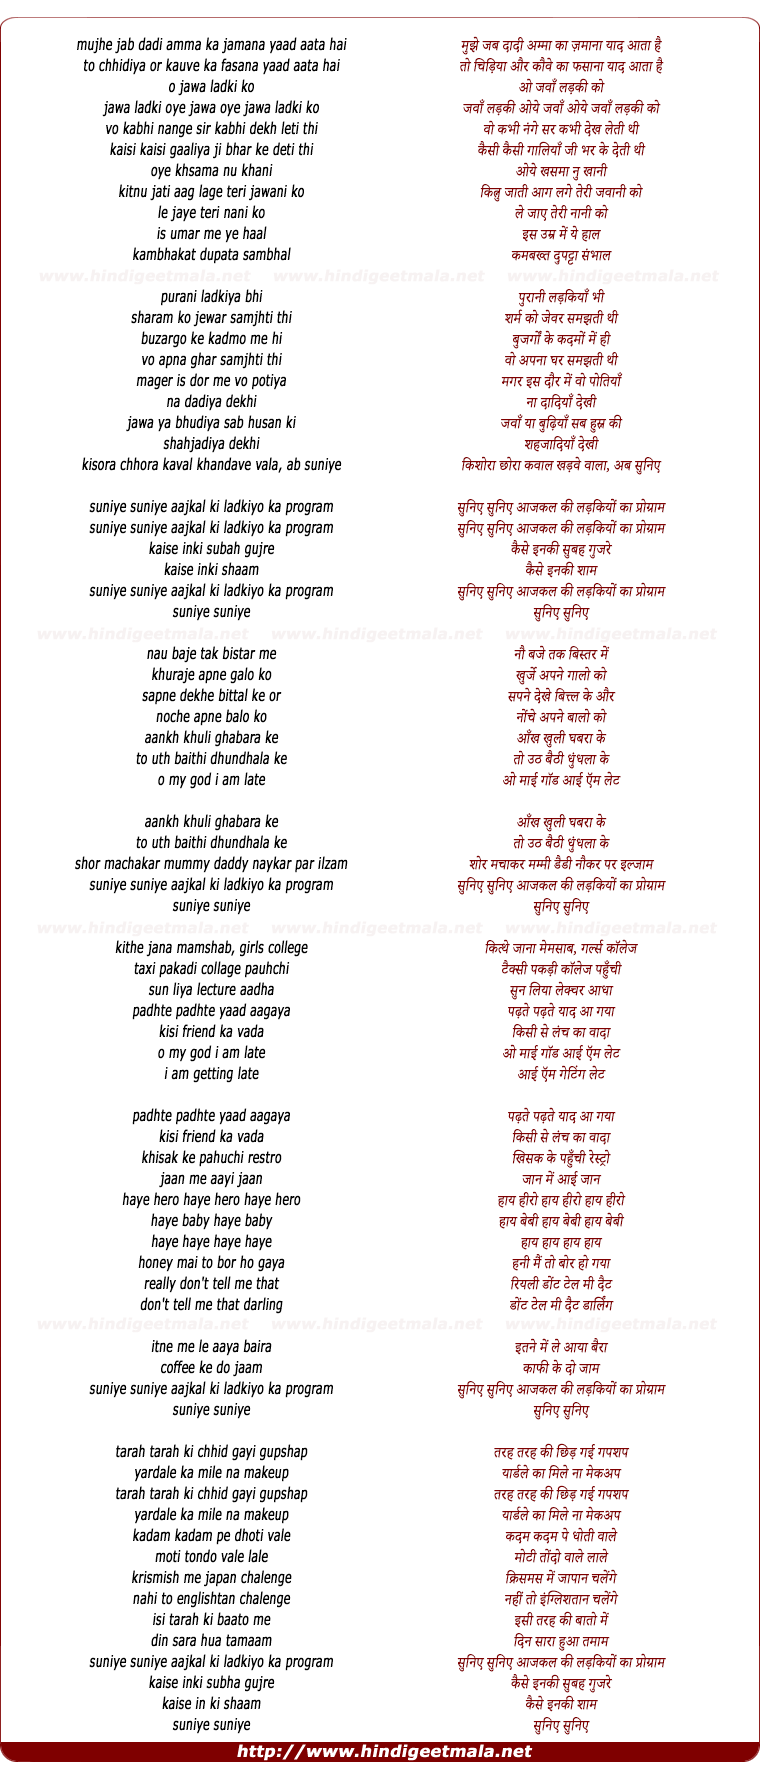 lyrics of song Suniye Suniye Aajkal Ki Ladkiyo Ka Program (Suniye Suniye)